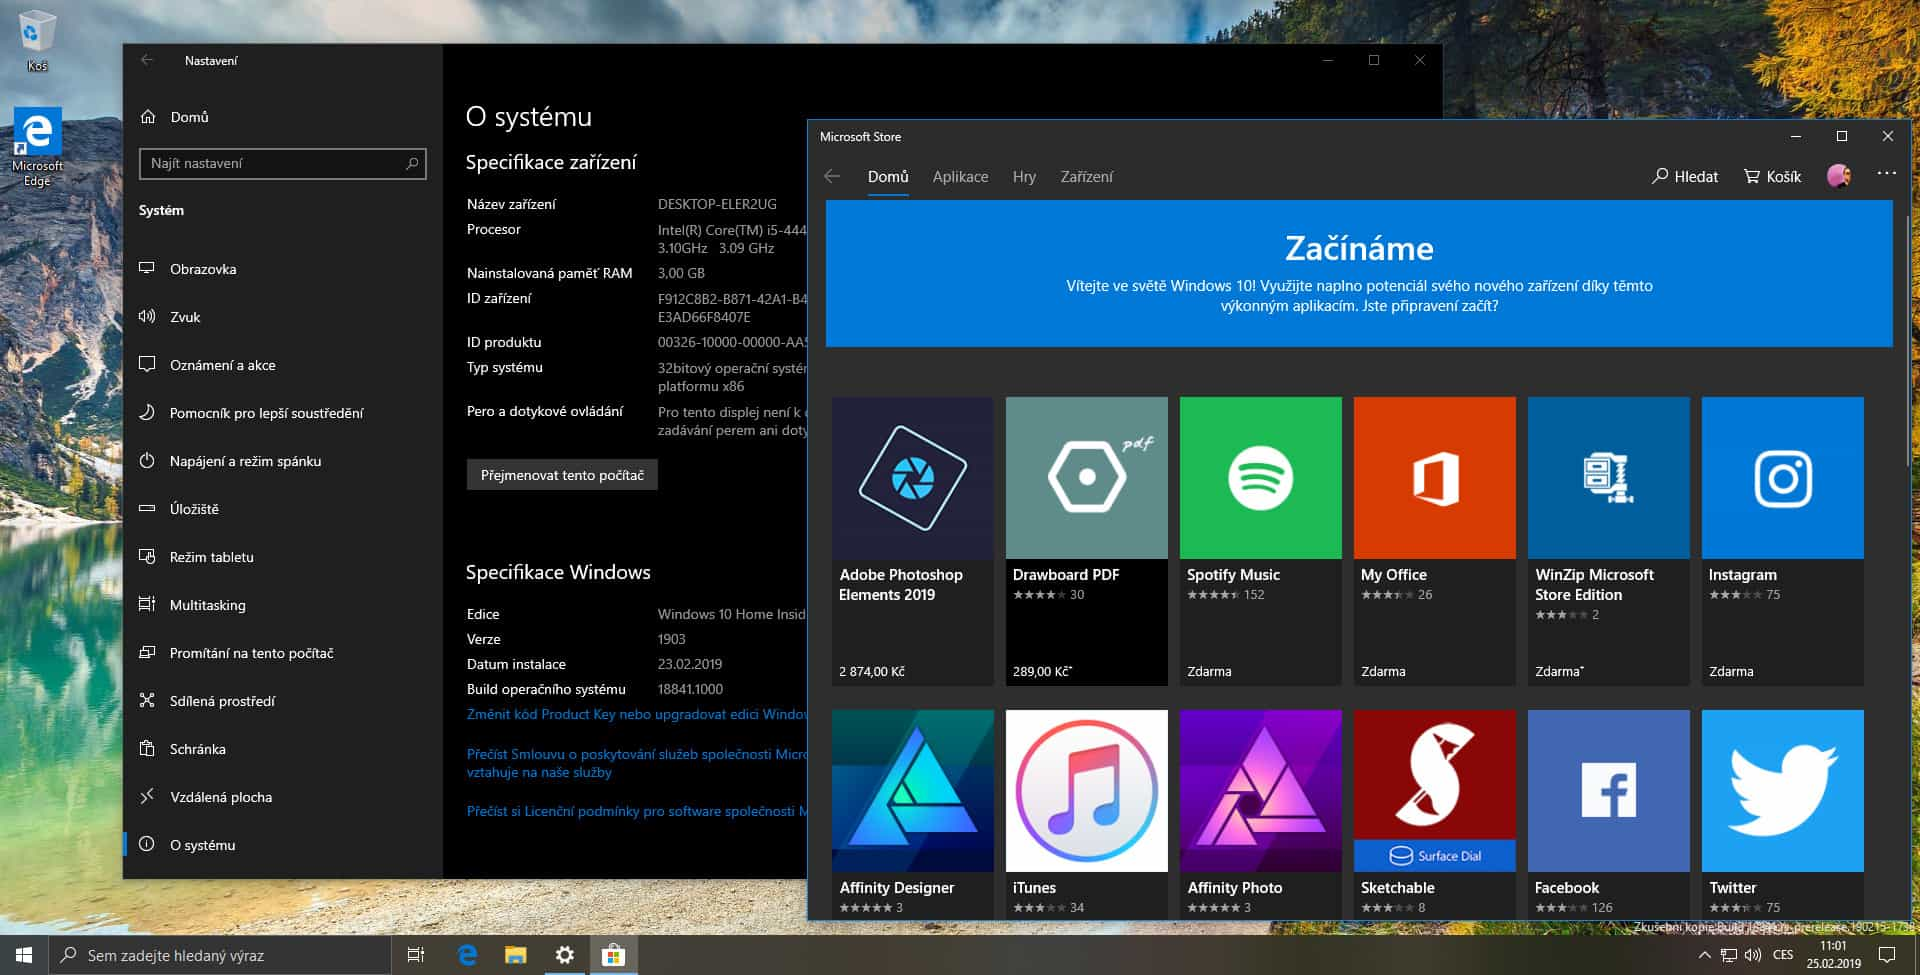 Windows 10 Insider Preview build 18841 1